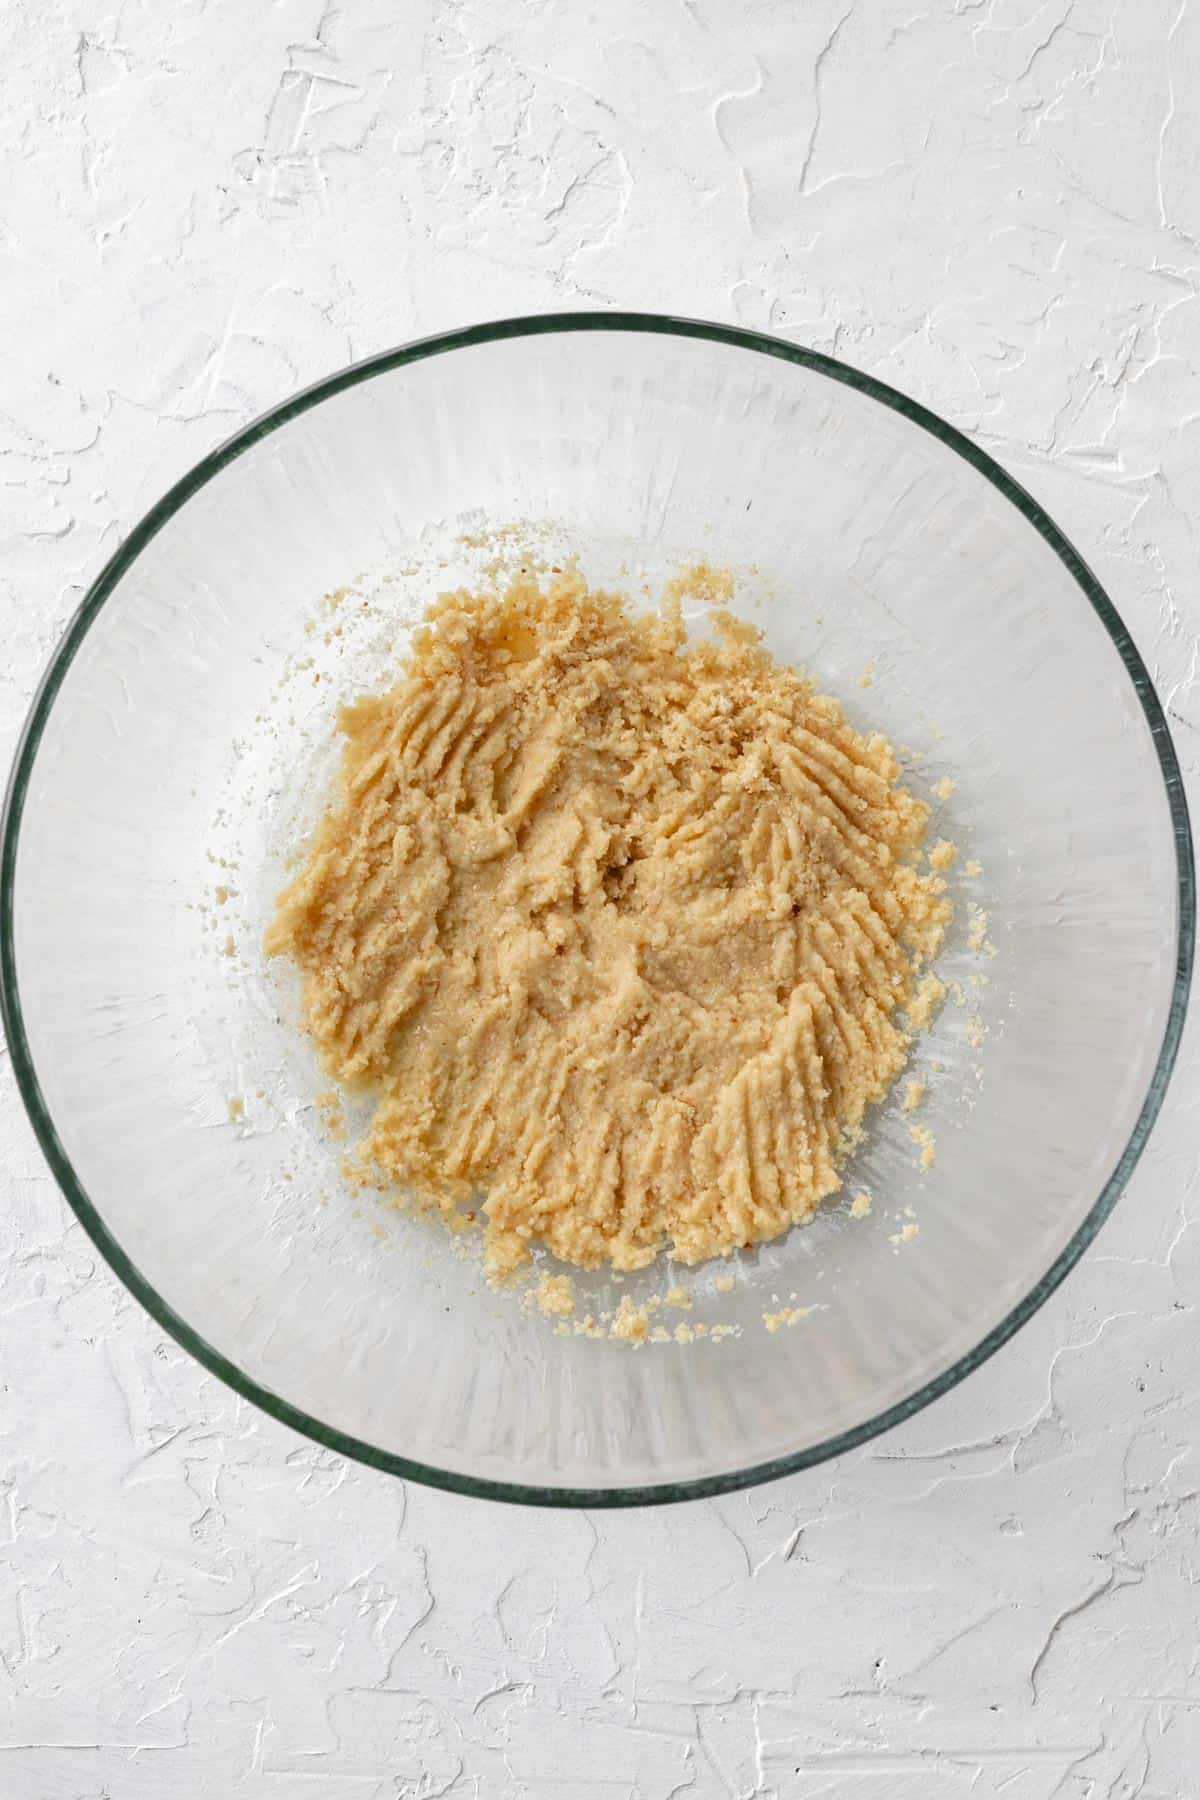 Breadcrumbs soaked in eggs and milk in a glass bowl.